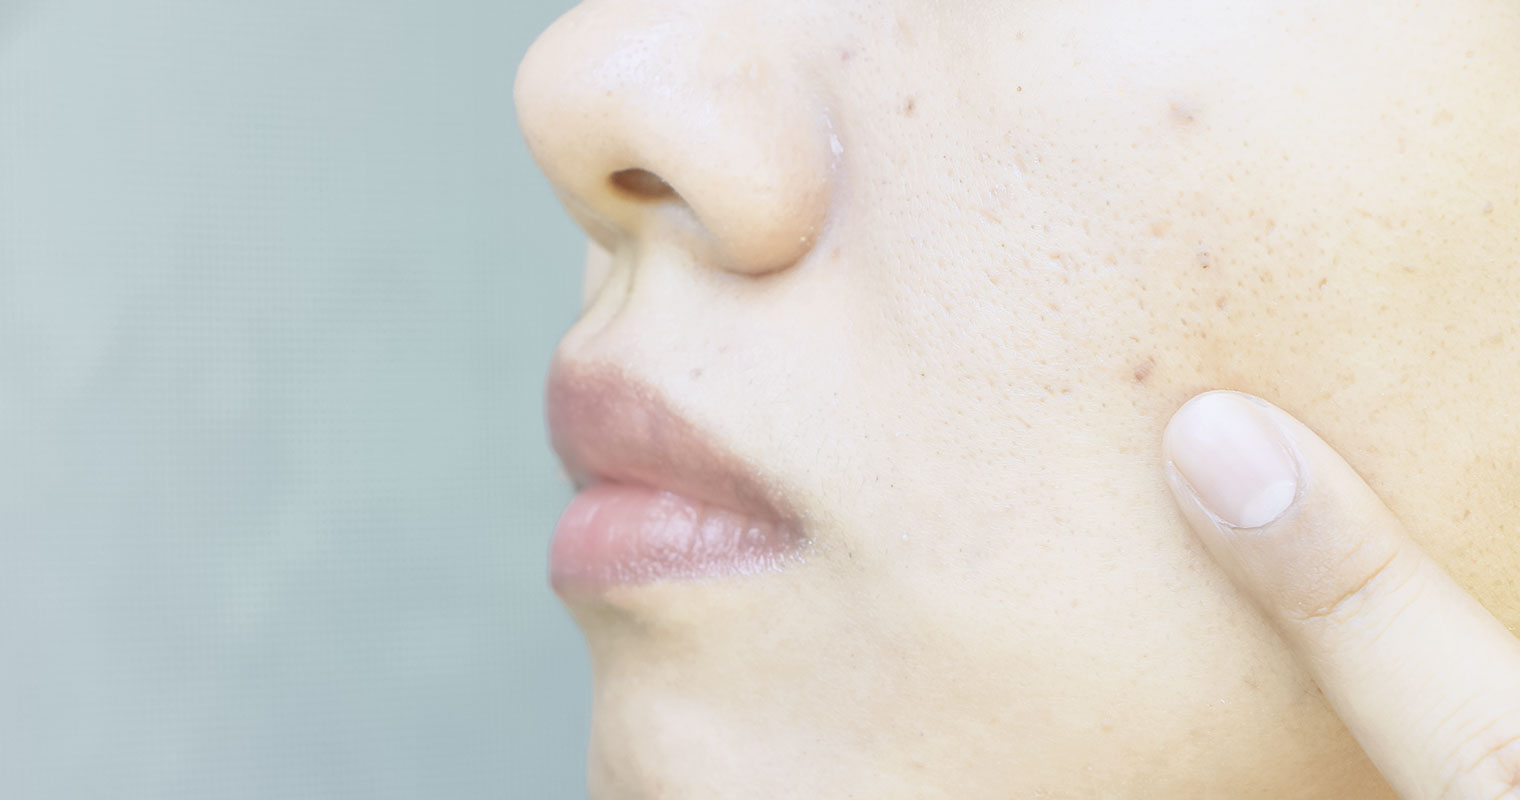 close up wide pores on oily face skin, nose and mouth which have problem skin of asia woman by woman use finger point focus problem on face have copy space on left side